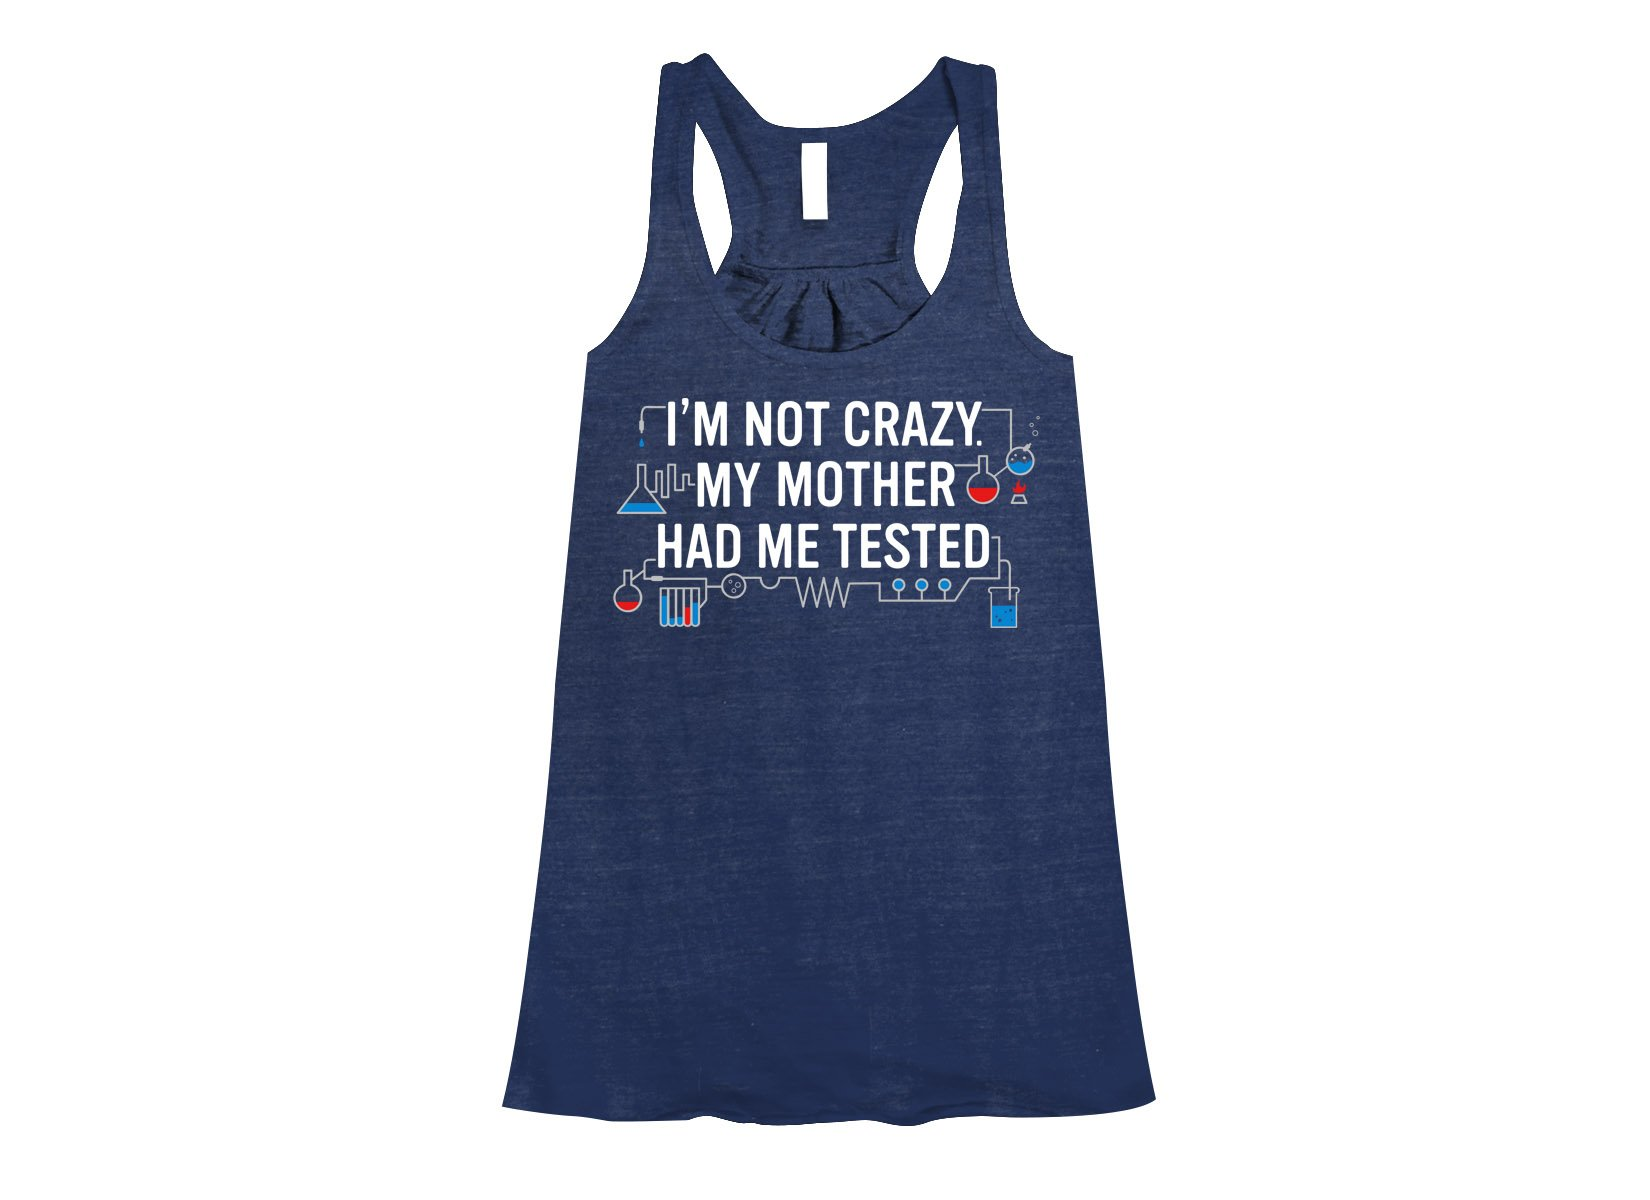 I'm Not Crazy. My Mother Had Me Tested. on Womens Tanks T-Shirt